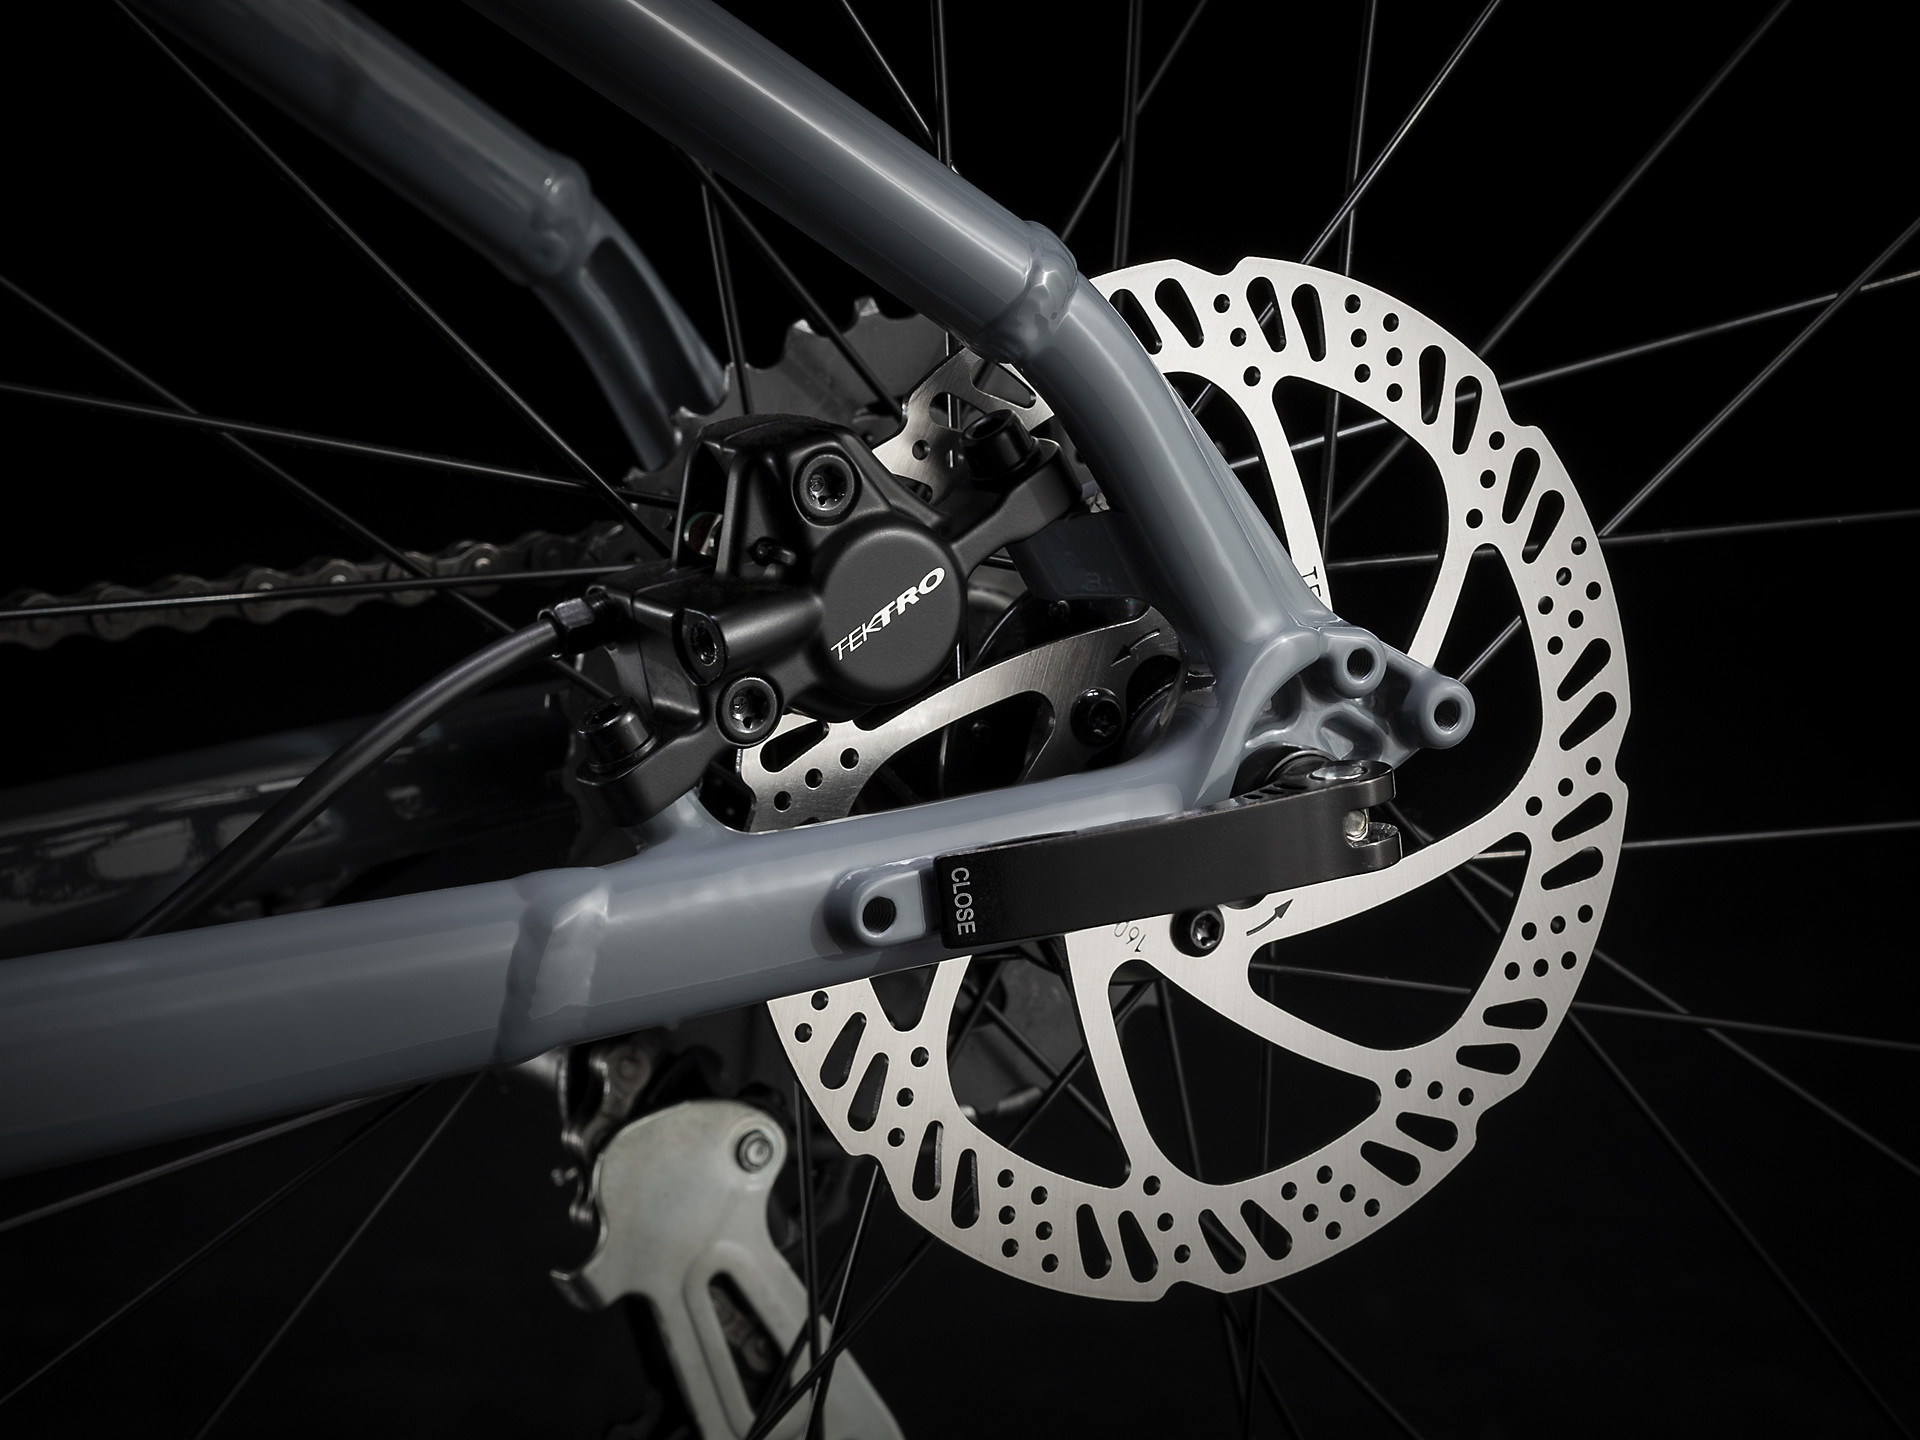 Trek Marlin disc brakes